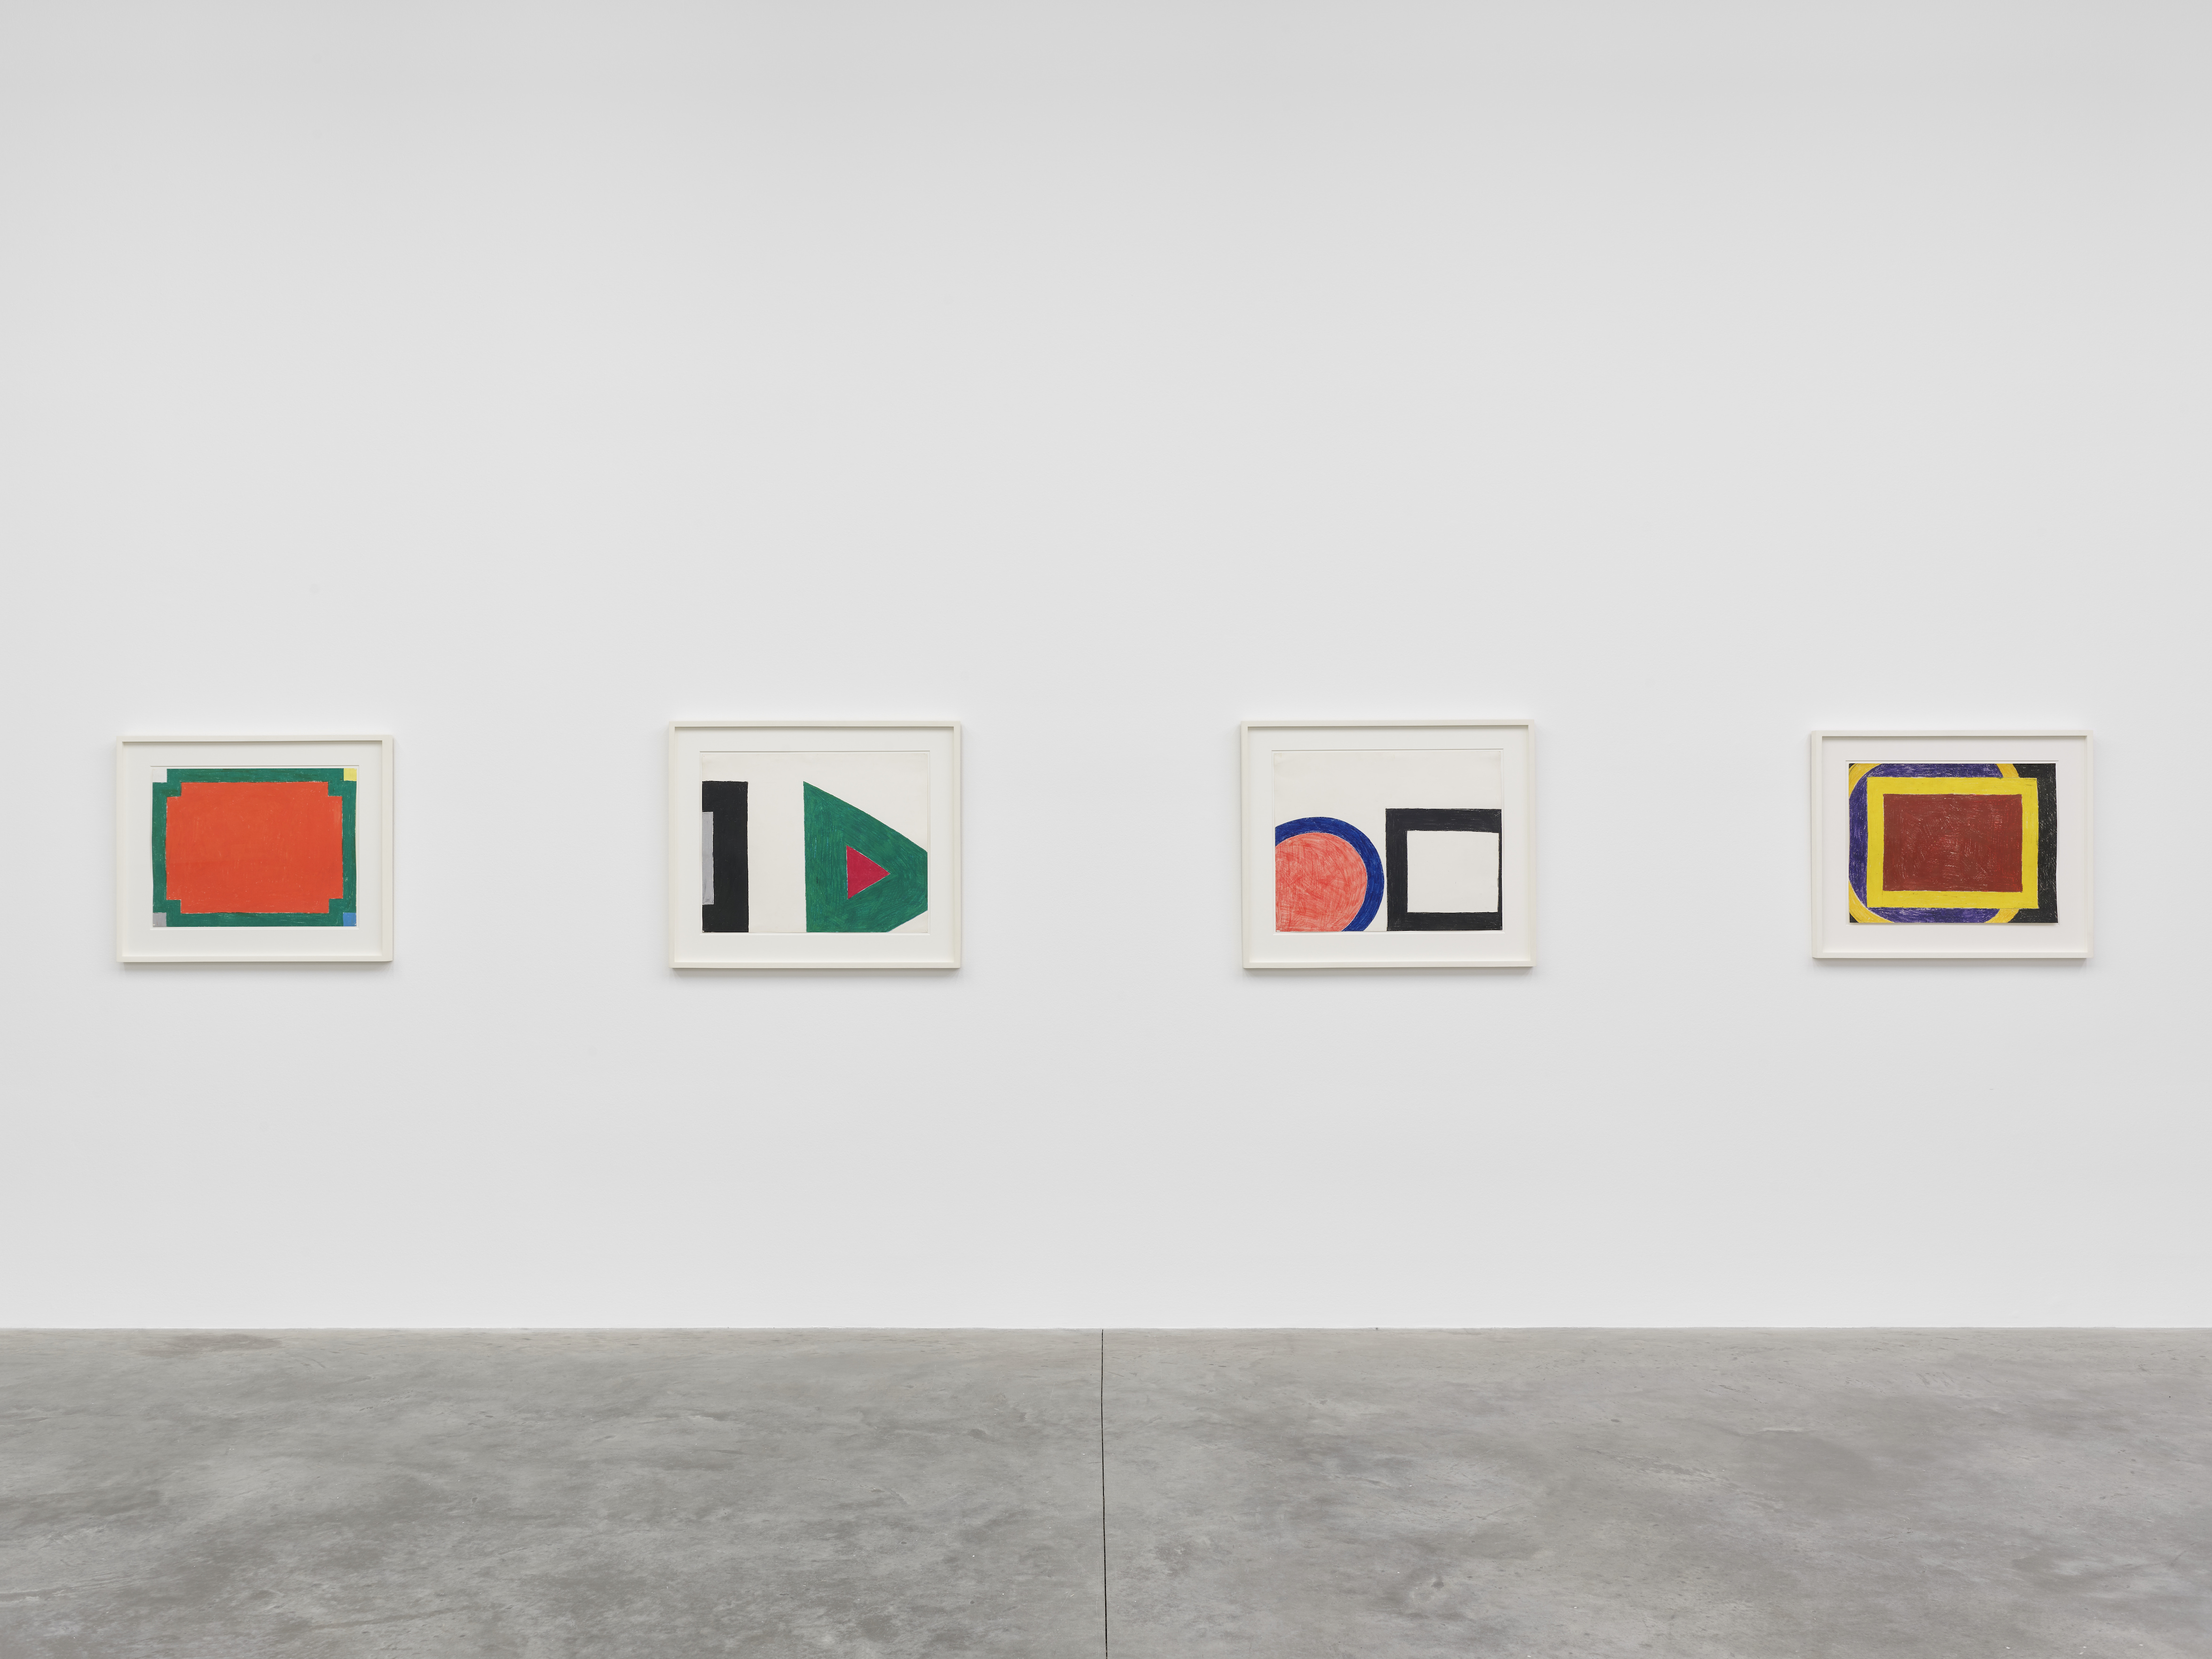 Installation view 5, 'Al Held: The Sixties' © the artist. Photo © White Cube (Theo Christelis)